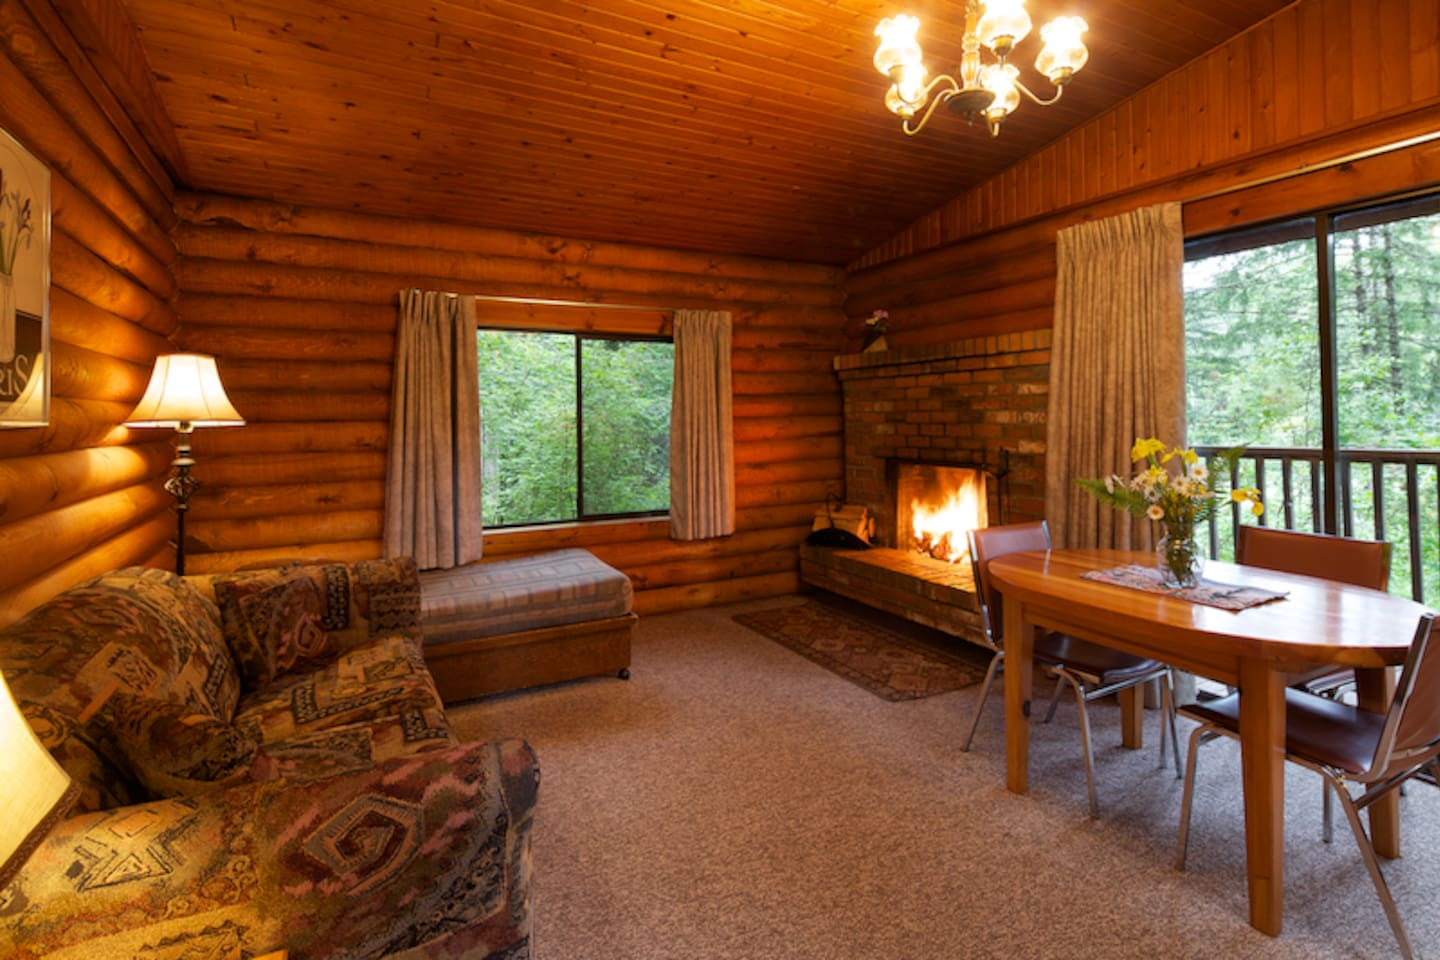 All of our 1-bedroom cabins feature a wood-burning fireplace.  We do daily firewood delivery!